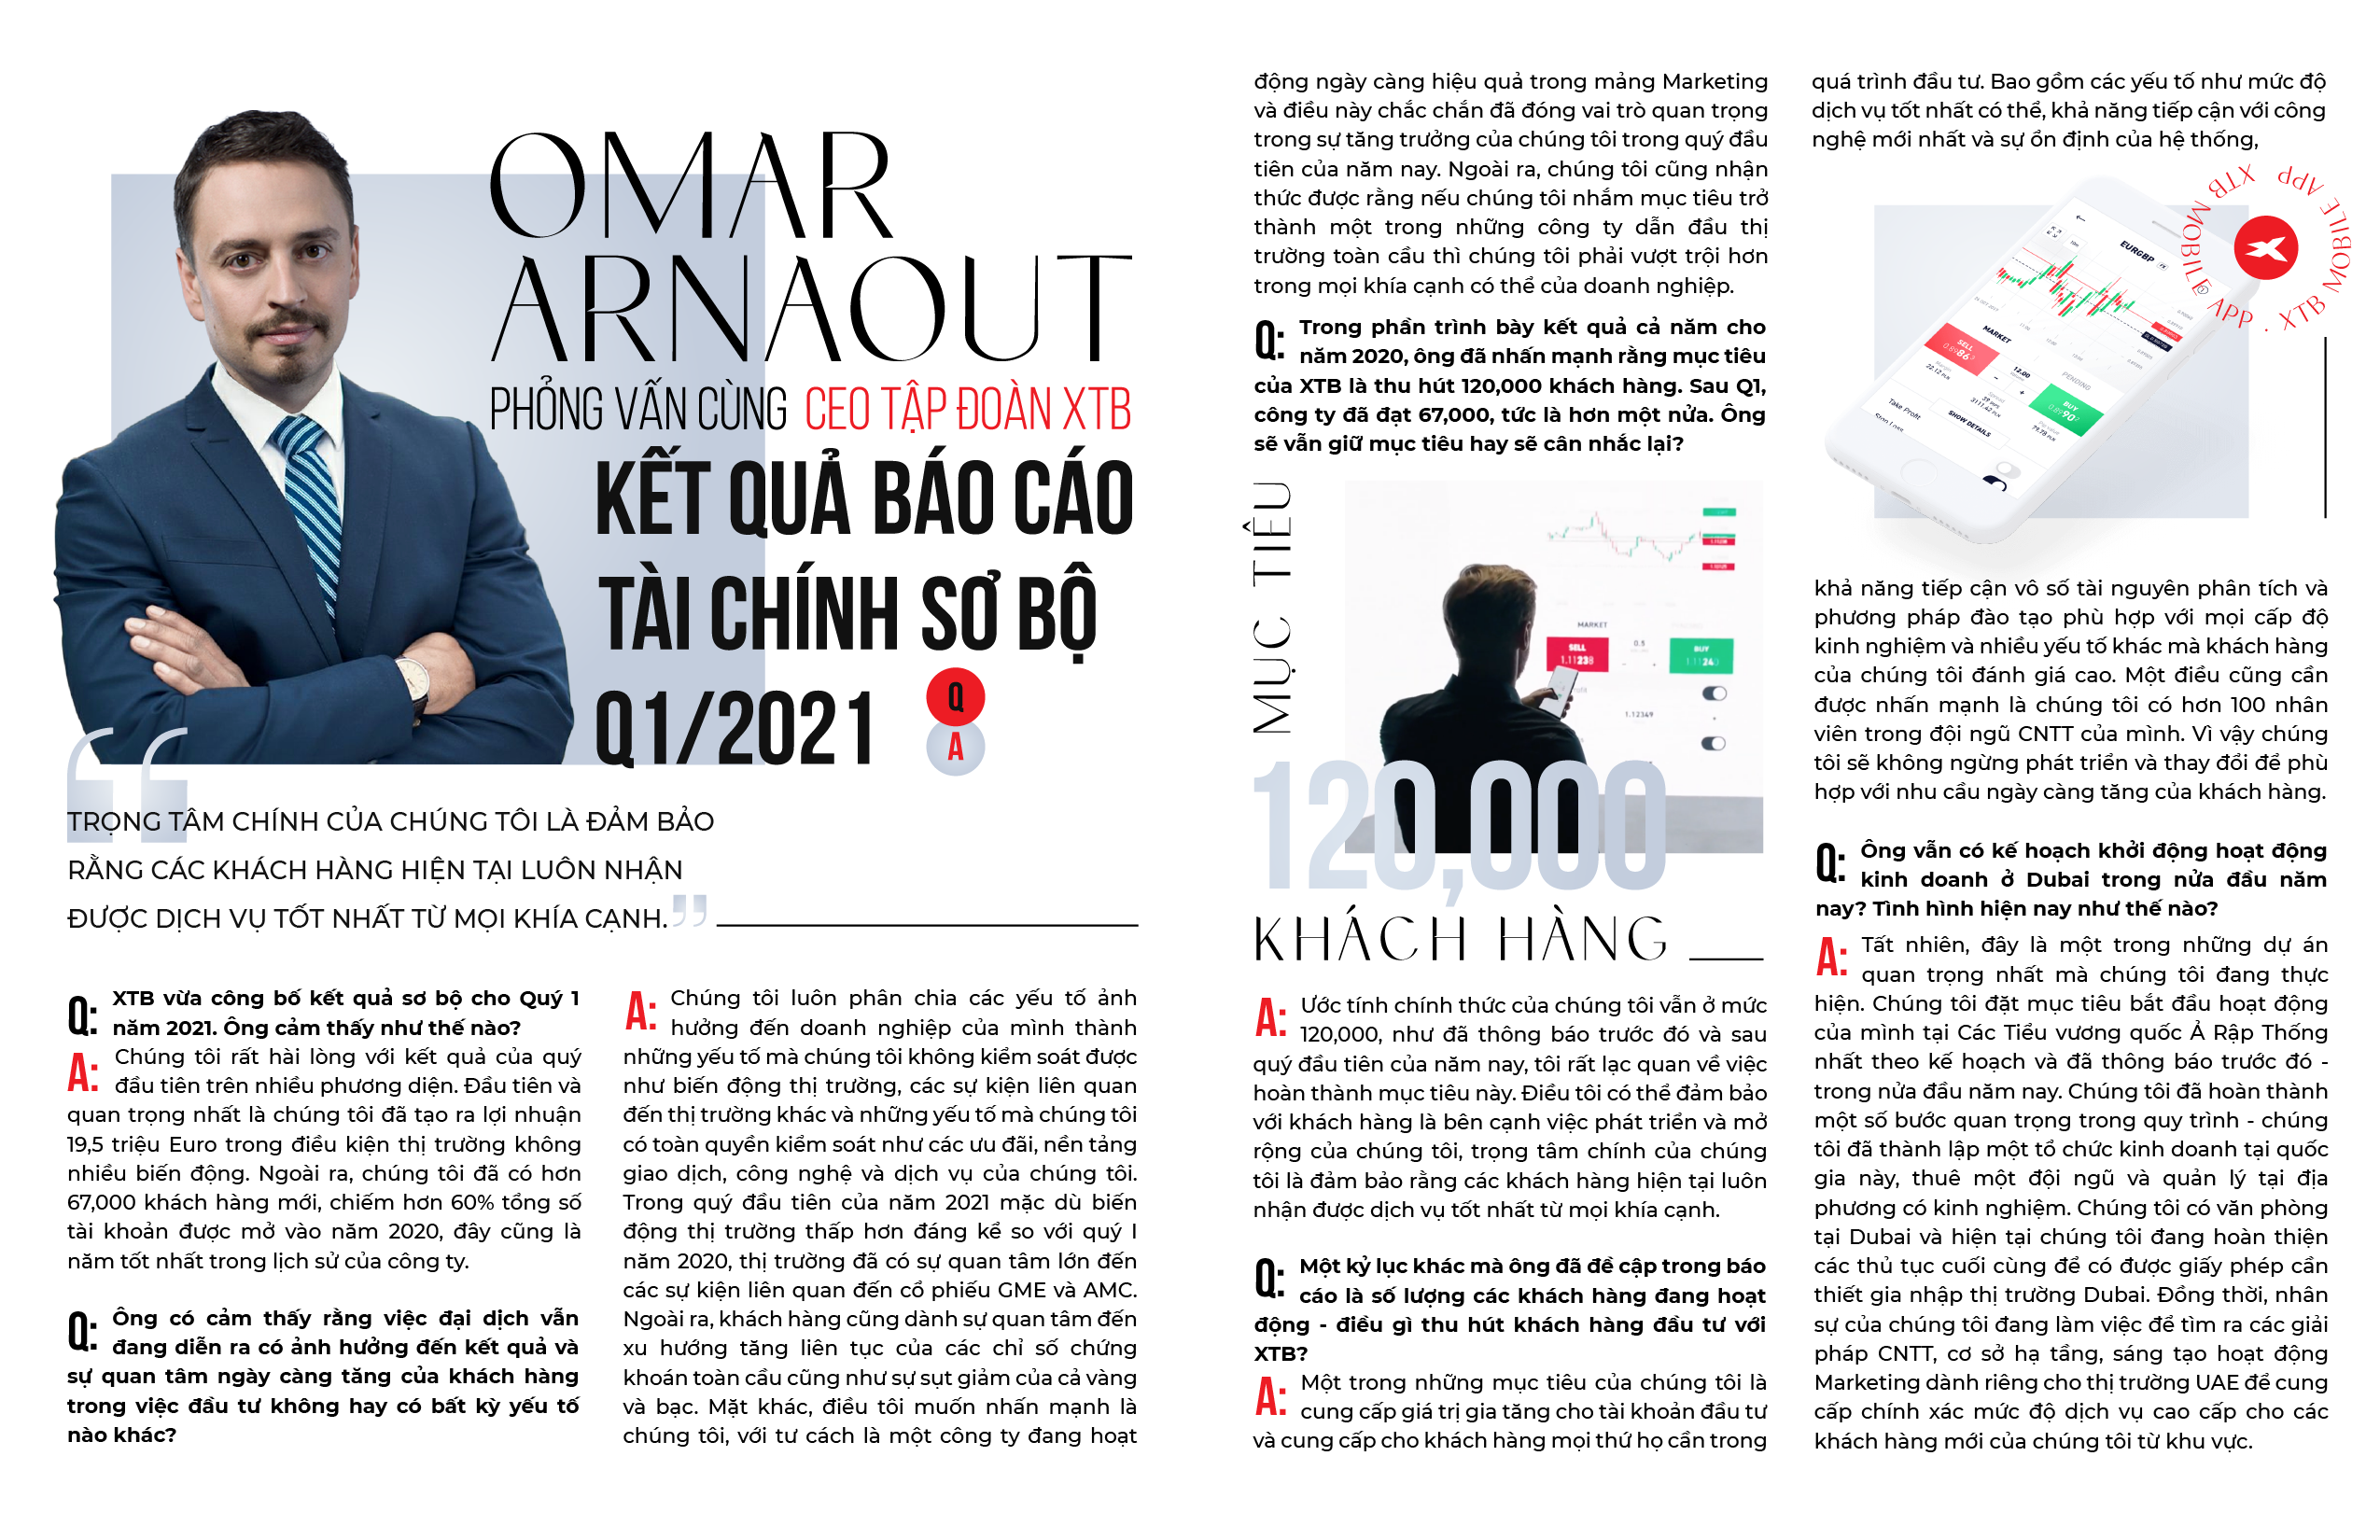 xtb - interview with Omar-01-2